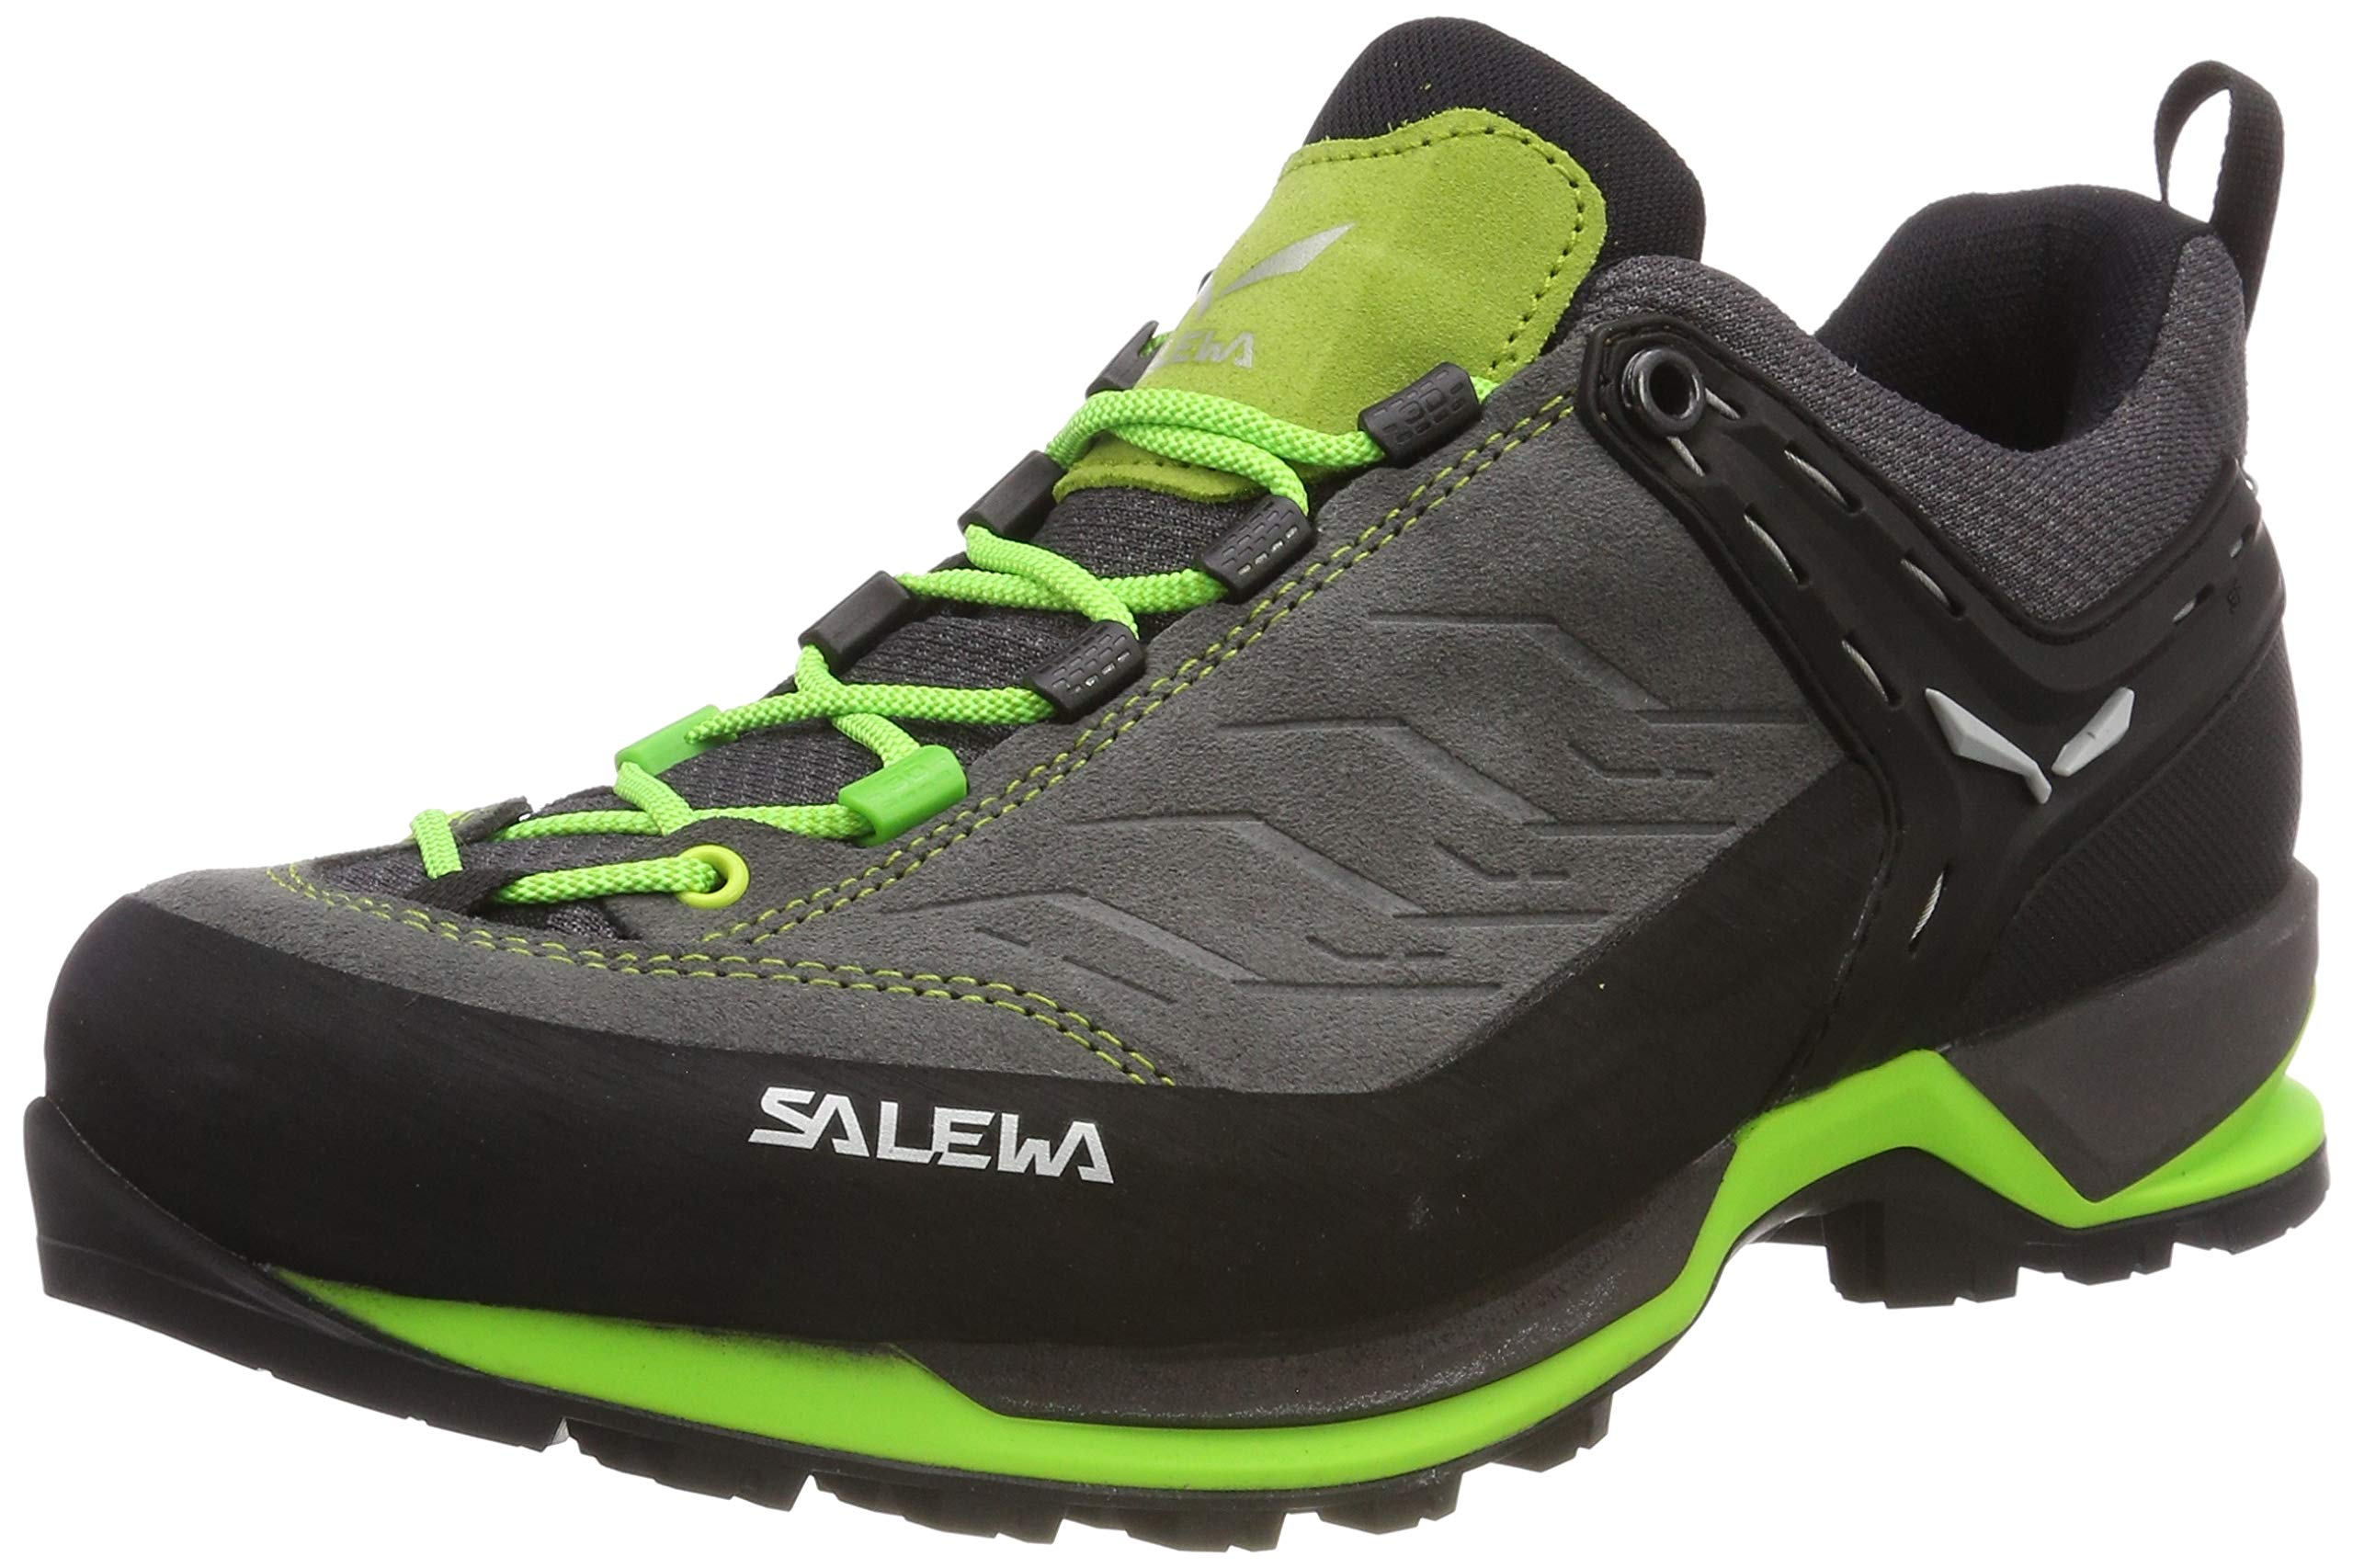 Salewa Men's Mtn Trainer - Ombre Blue/tender Shot - 11.5 by Salewa